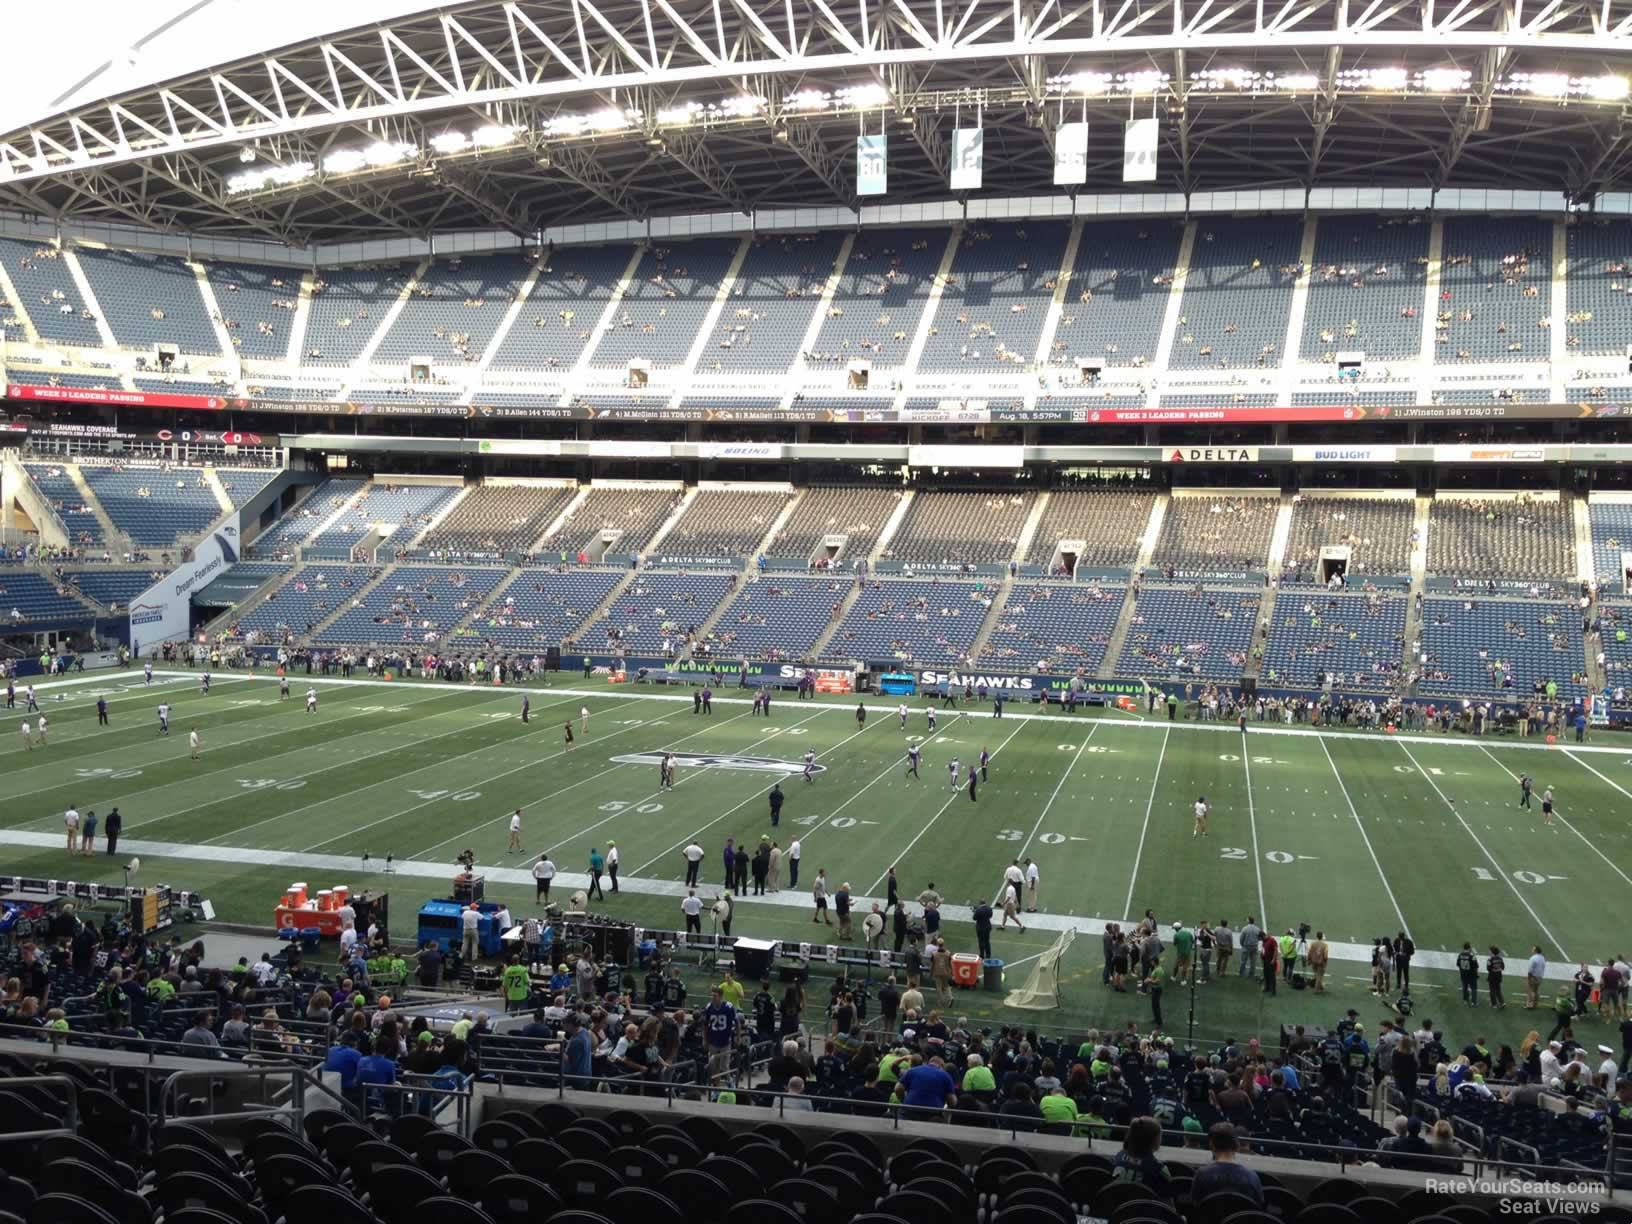 Seahawks Club Level Seats